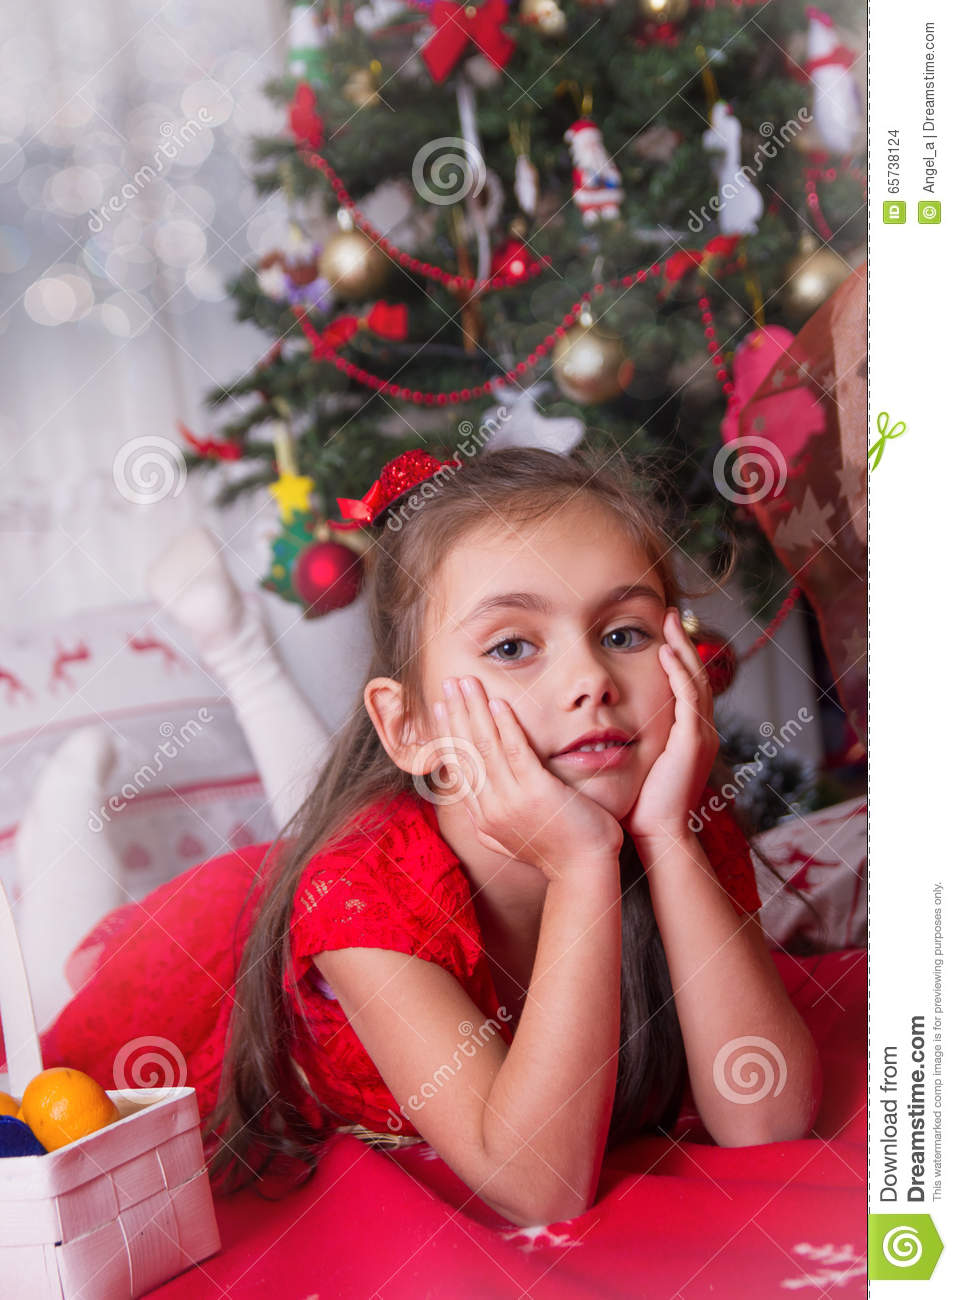 Girl in red lying under Christmas tree